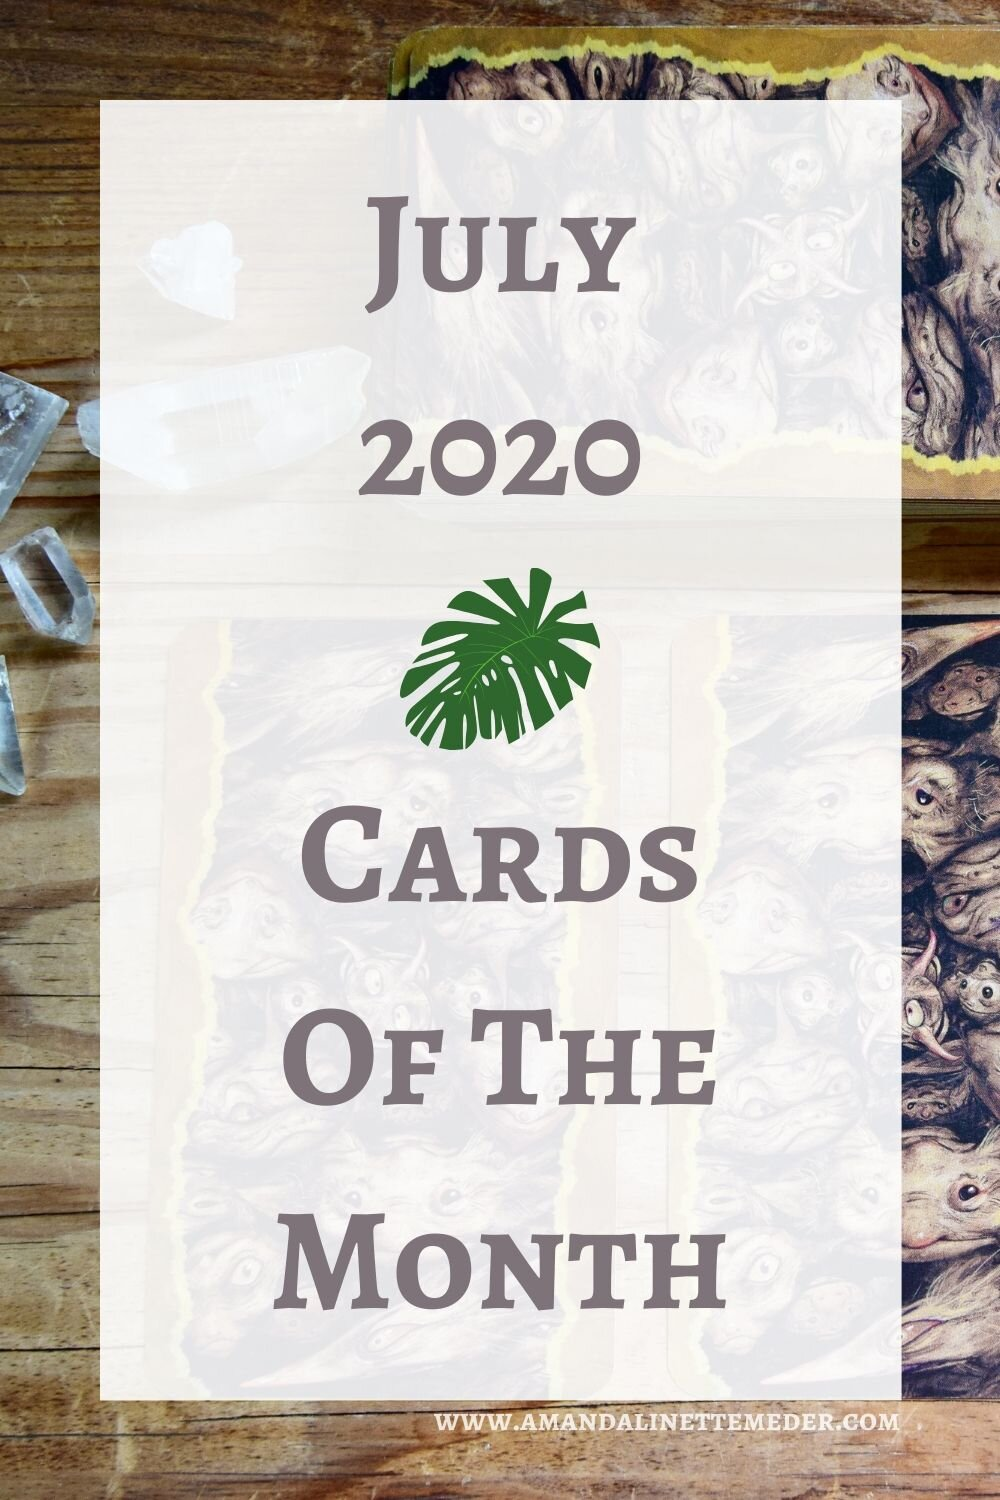 Oracle Card Reading. Photo of Faeries Oracle on wooden table with text overlay of July 2020 Cards of the Month.